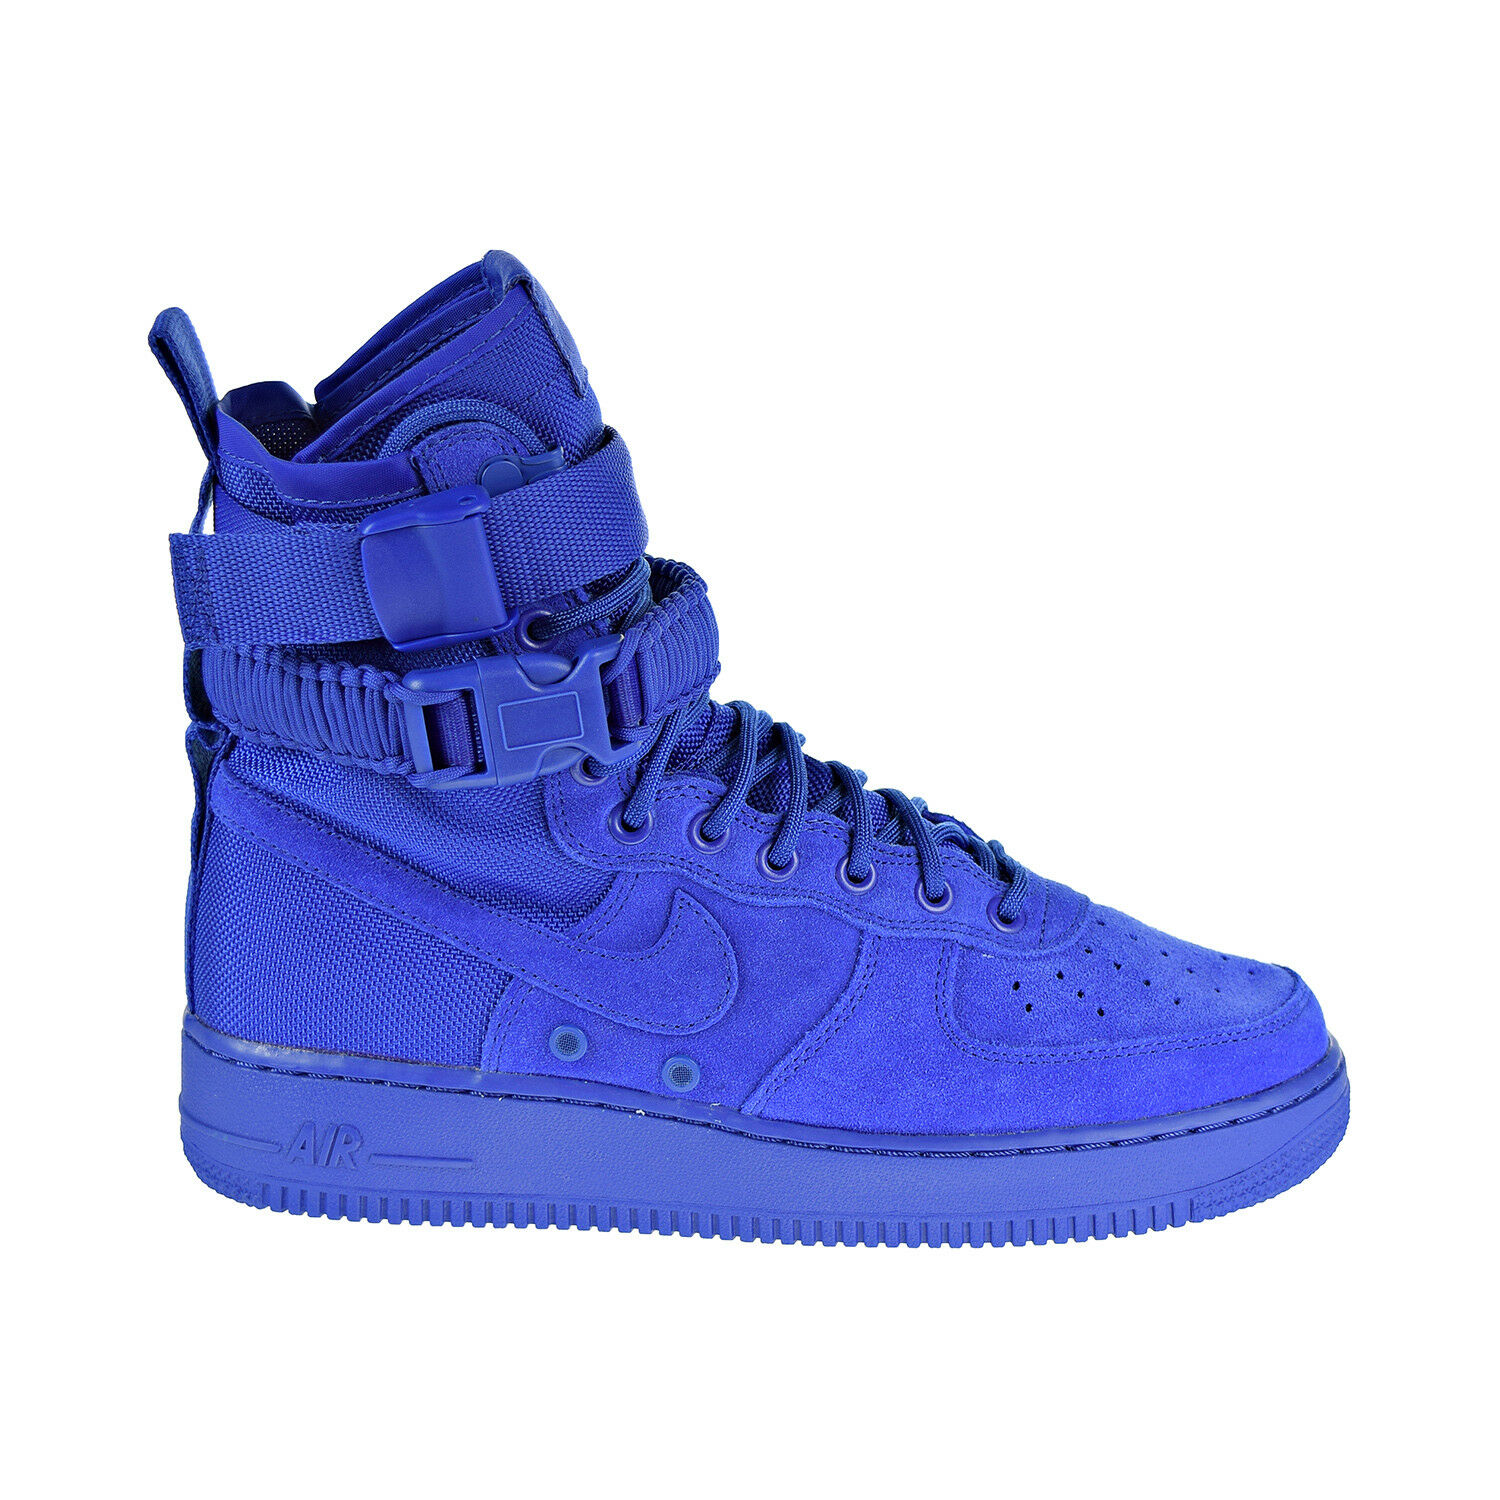 Nike SF Air Force Royal 1 Men's Shoes Game Royal Force 864024-401 8242be